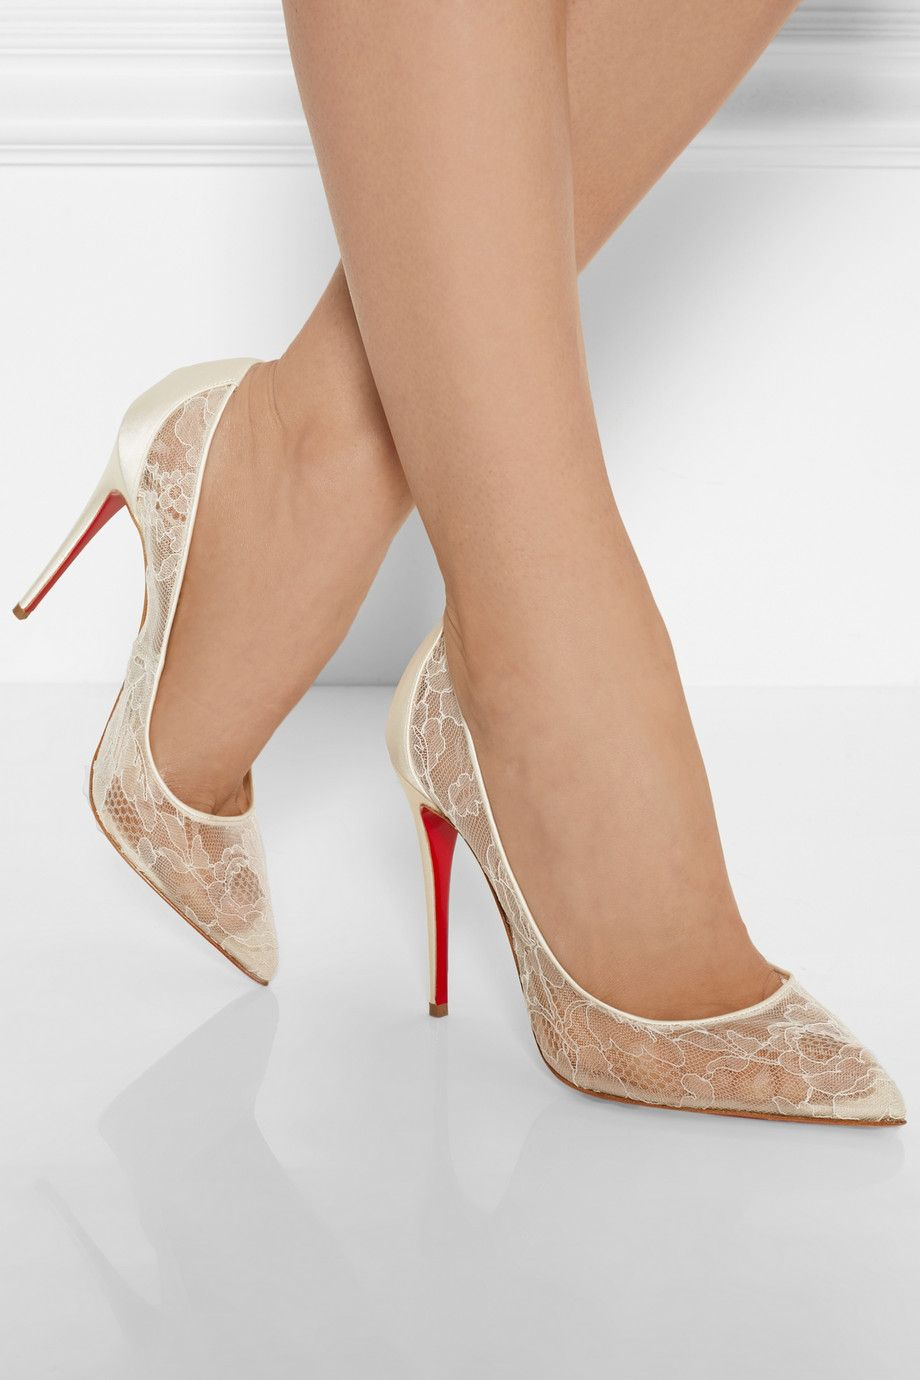 Christian Louboutin Follies 100 Lace And Satin Pumps Net A